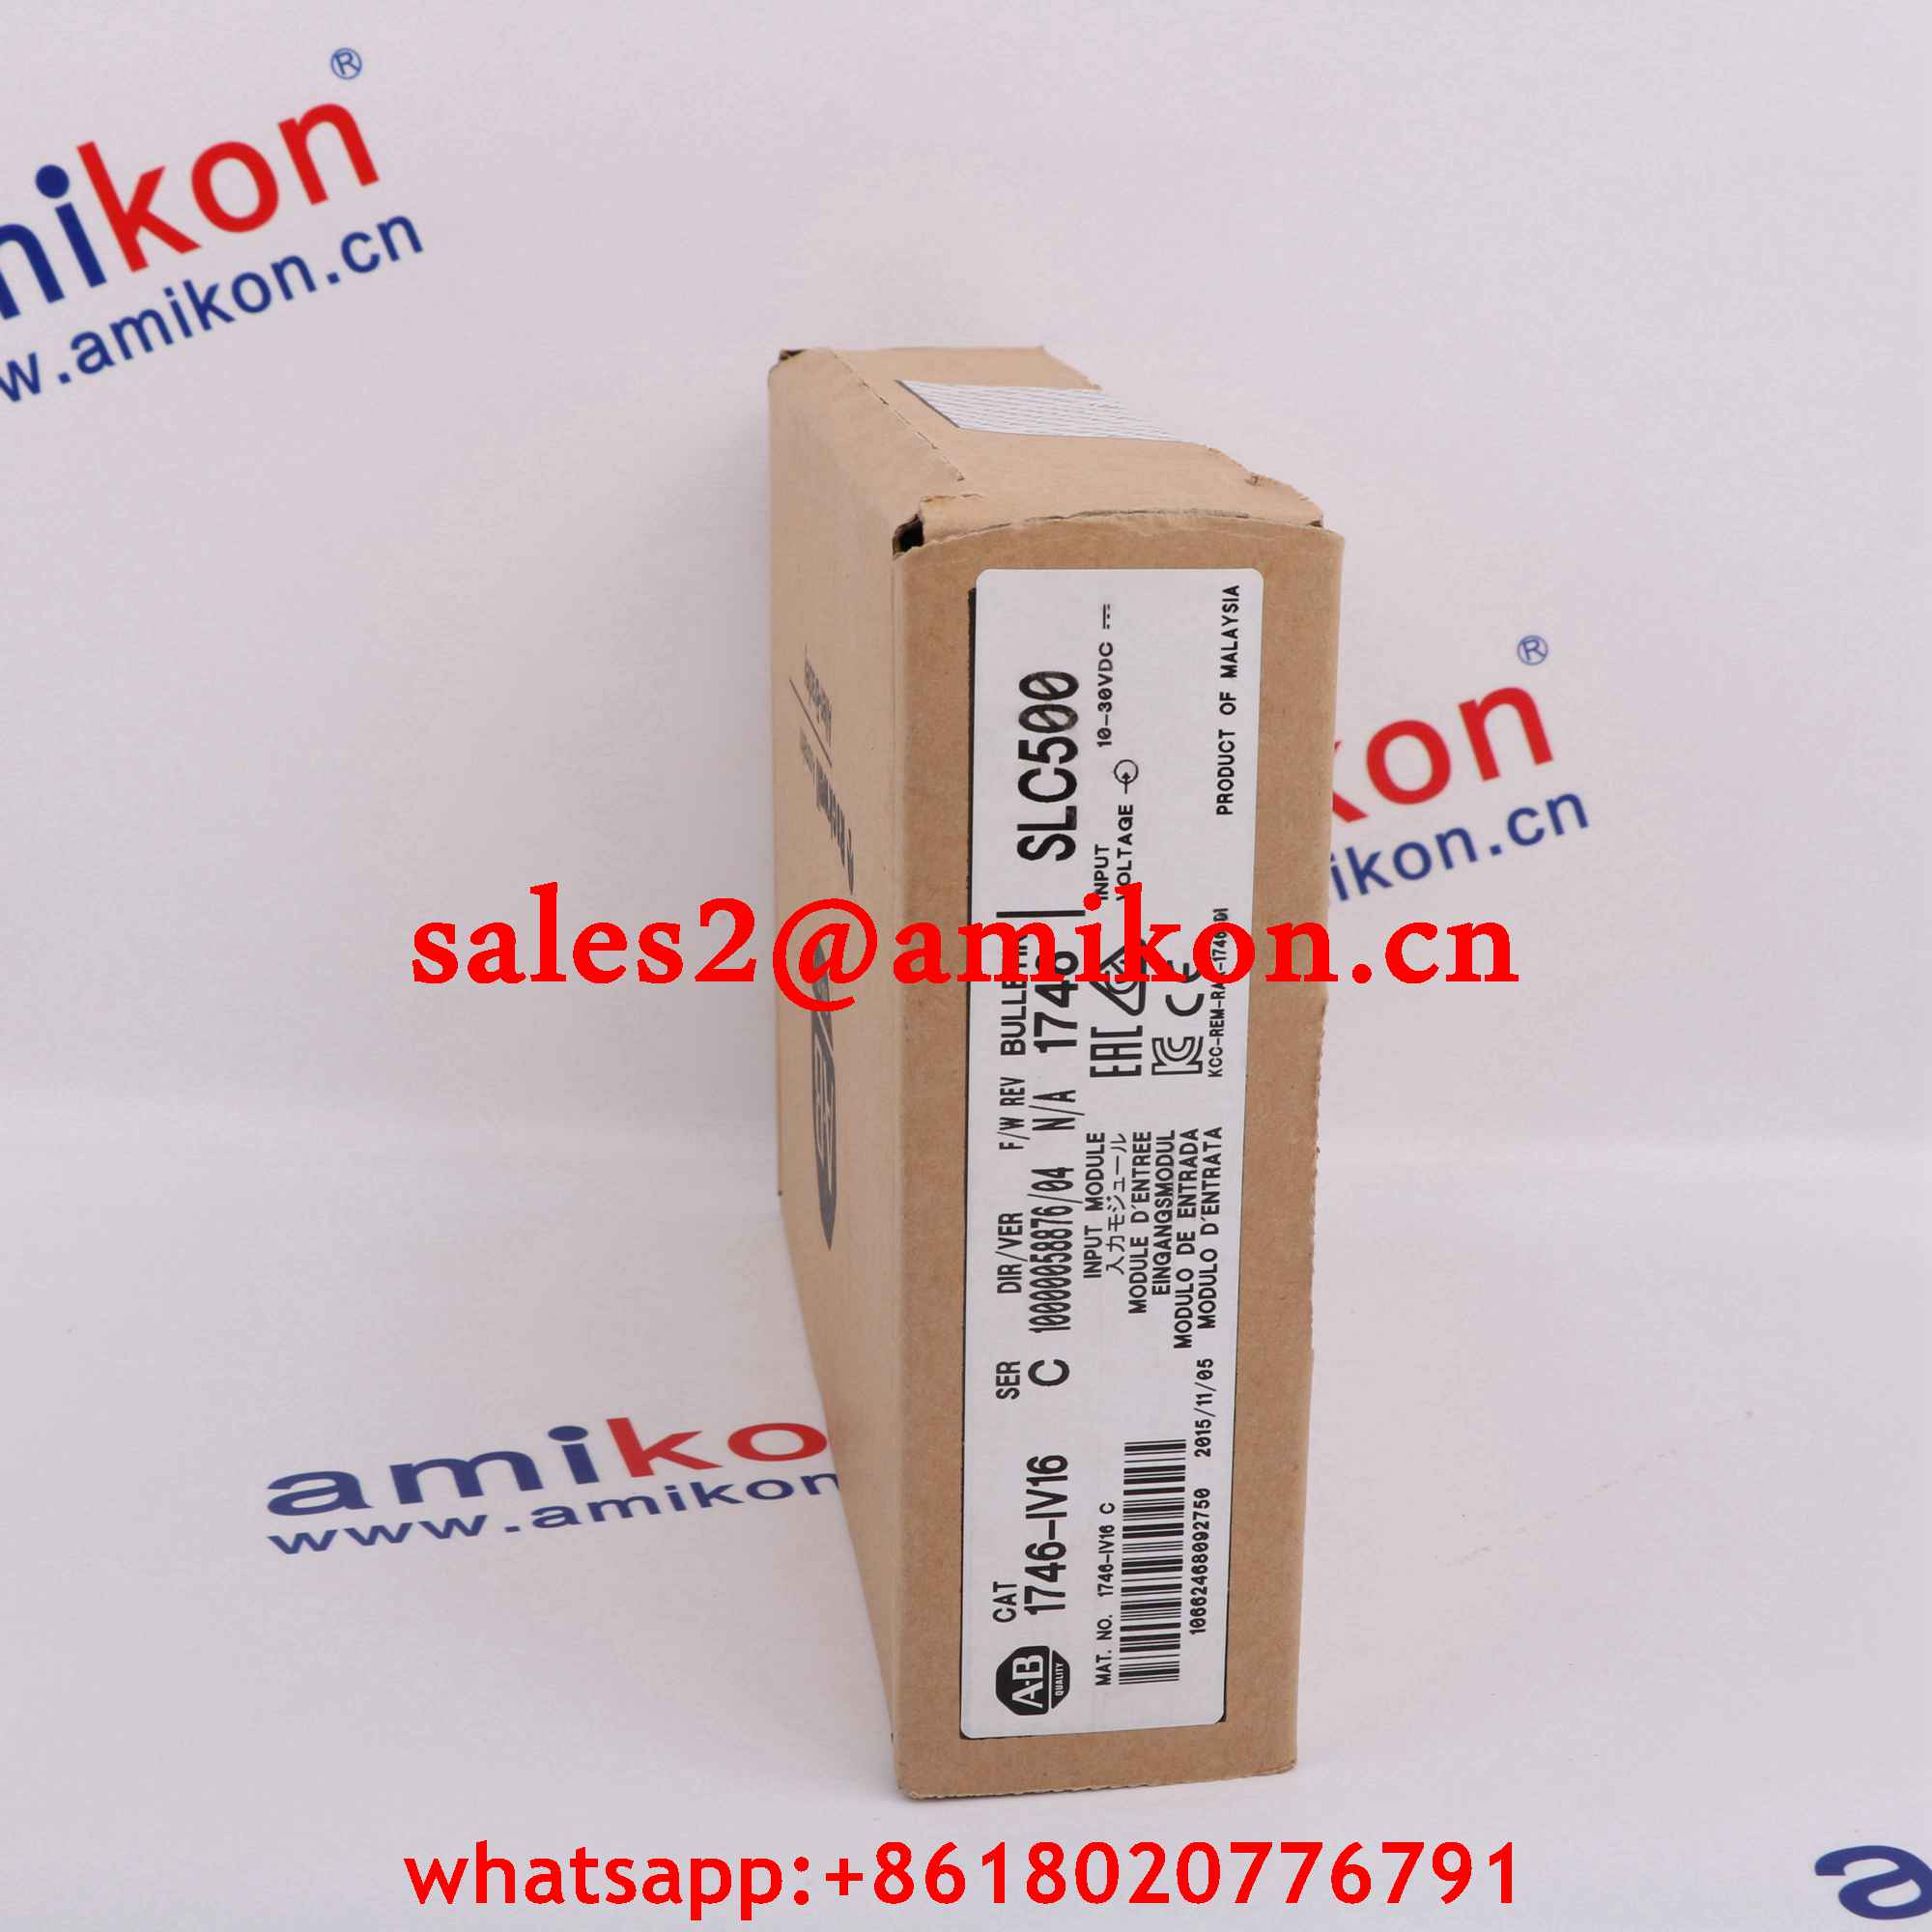 EMERSON WESTINGHOUSE/OVATION 5X00106G01 NEW IN STOCK DISOUNT SALE